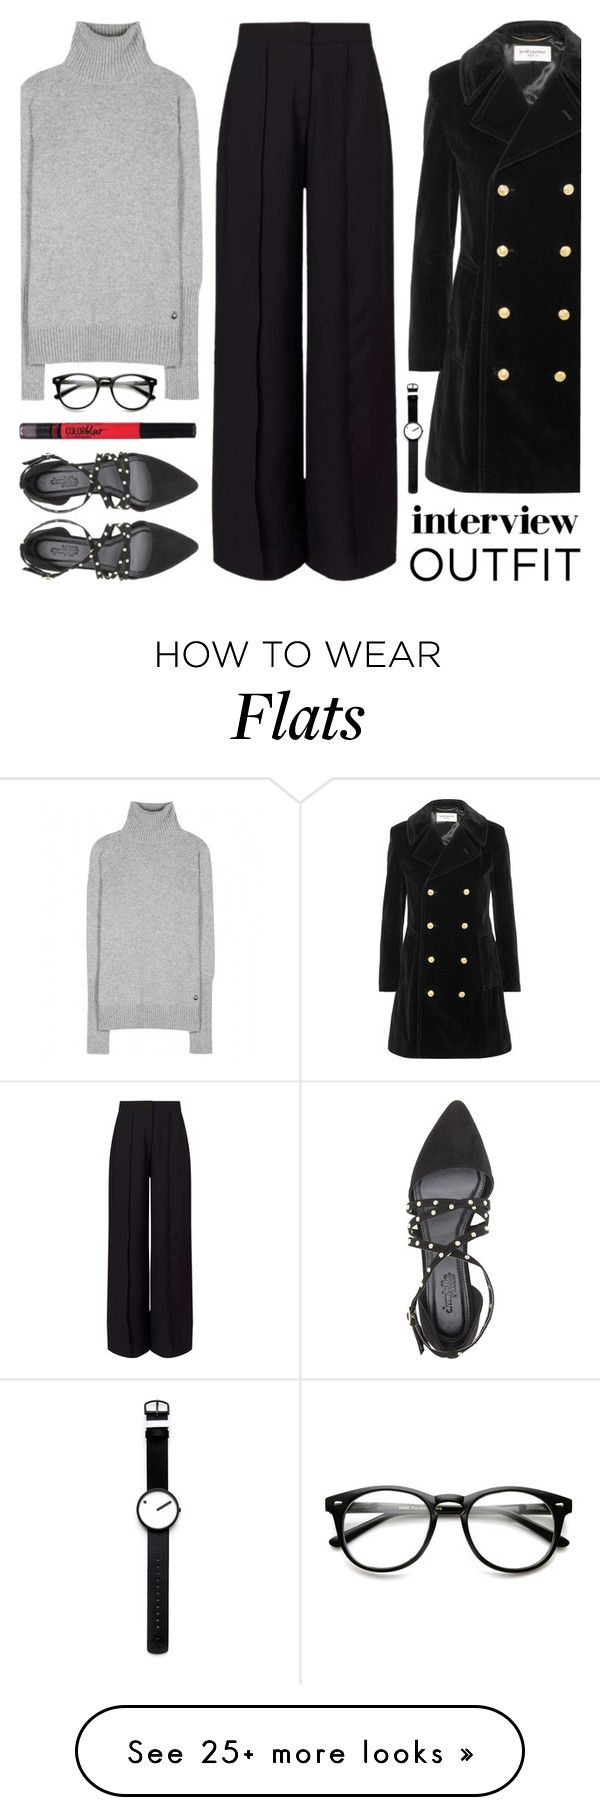 """""""60-Second Style:  Job Interview"""" by lgb321 on Polyvore featuring Loro Piana, Miss Selfridge, Yves Saint Laurent, Charlotte Russe, Rosendahl, Maybelline, jobinterview and 60secondstyle"""